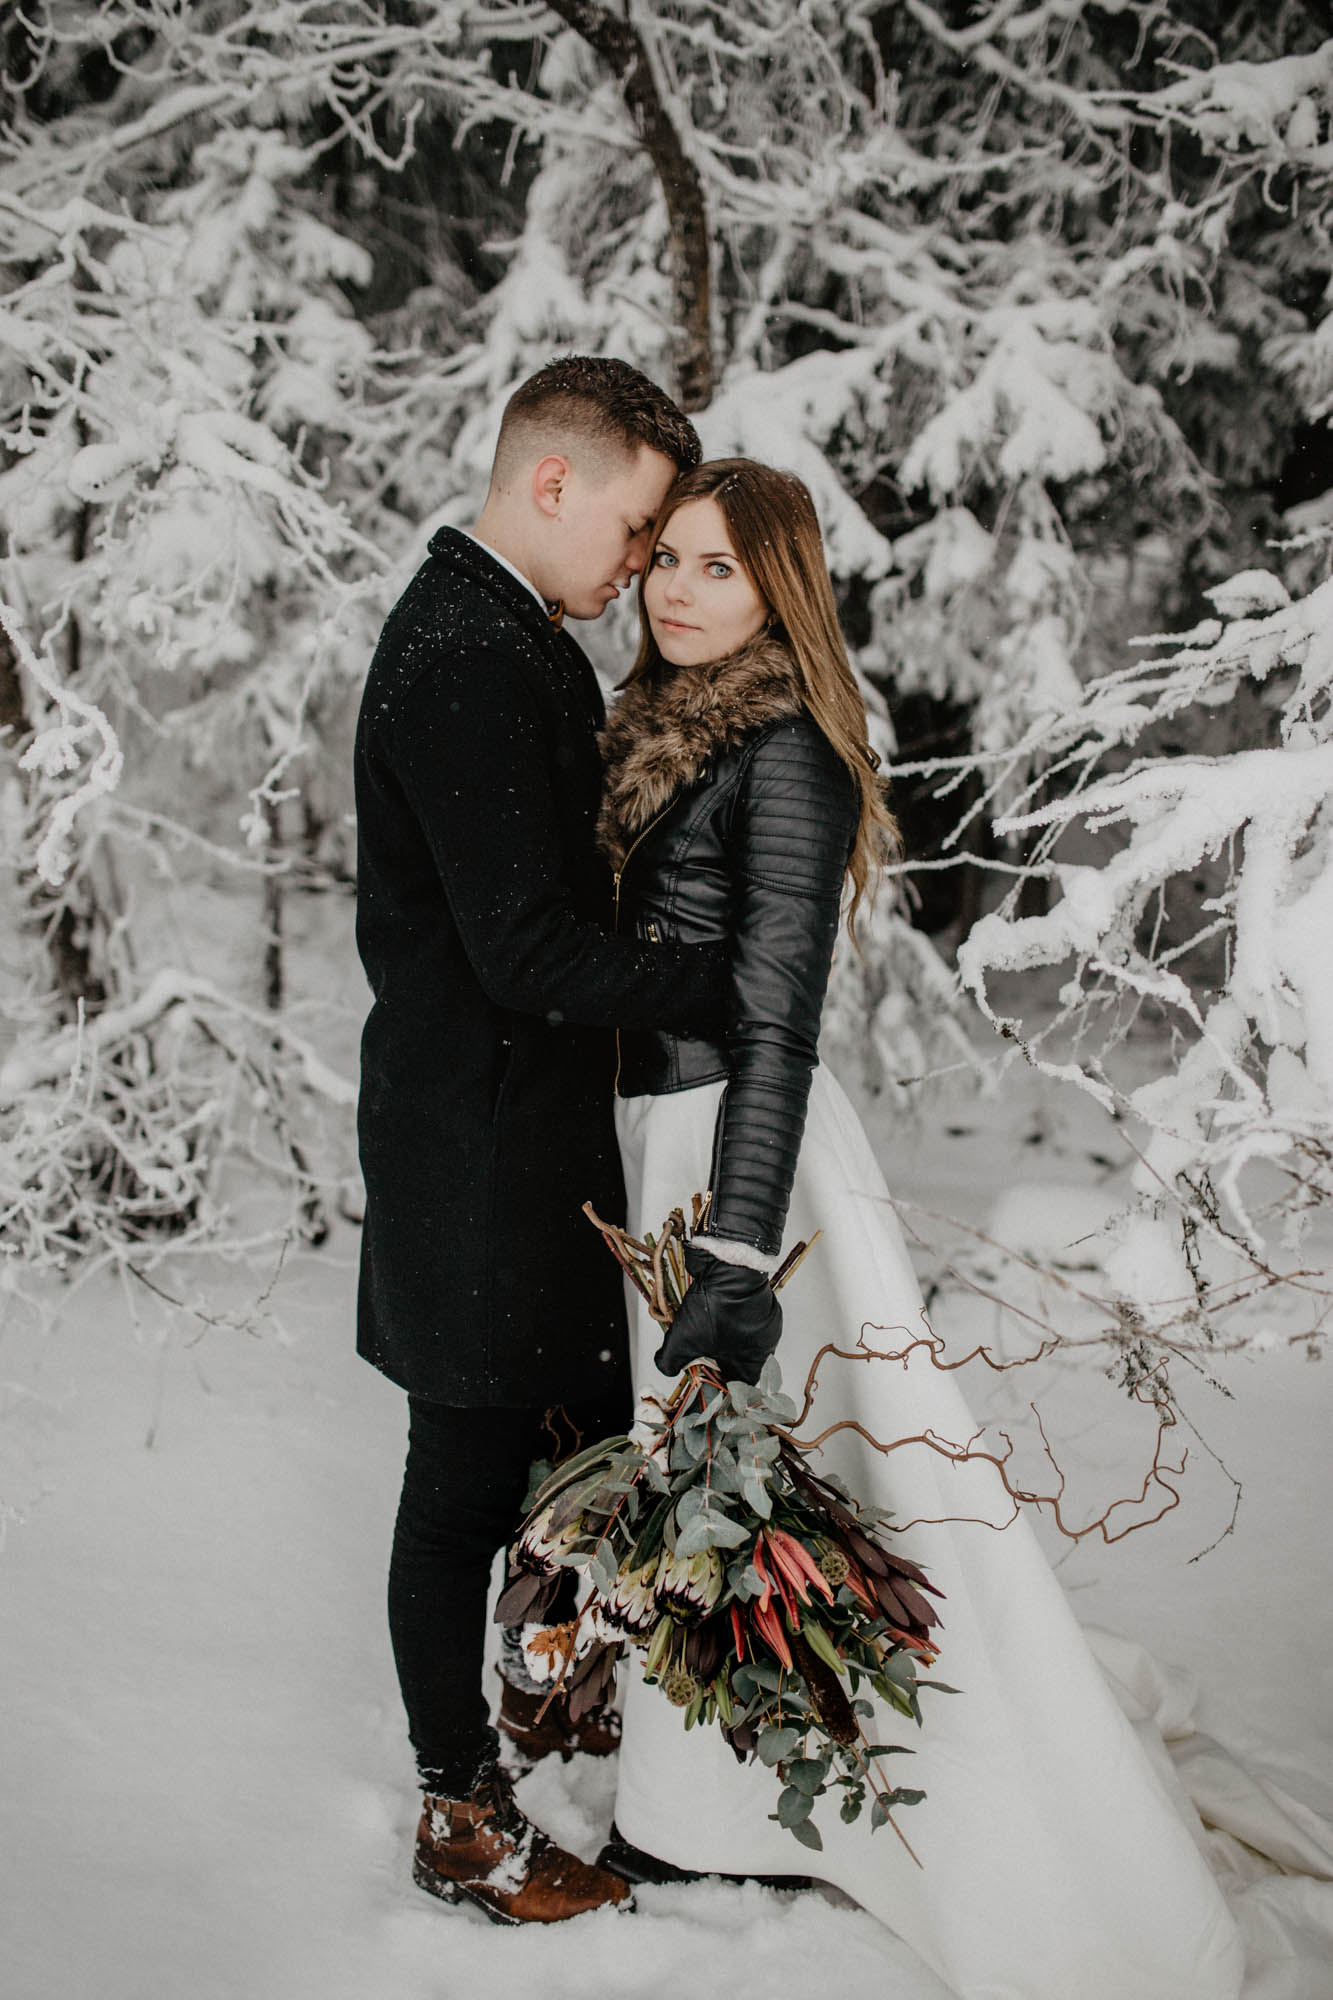 ashley_schulman_photography-winter_wedding_tampere-8.jpg